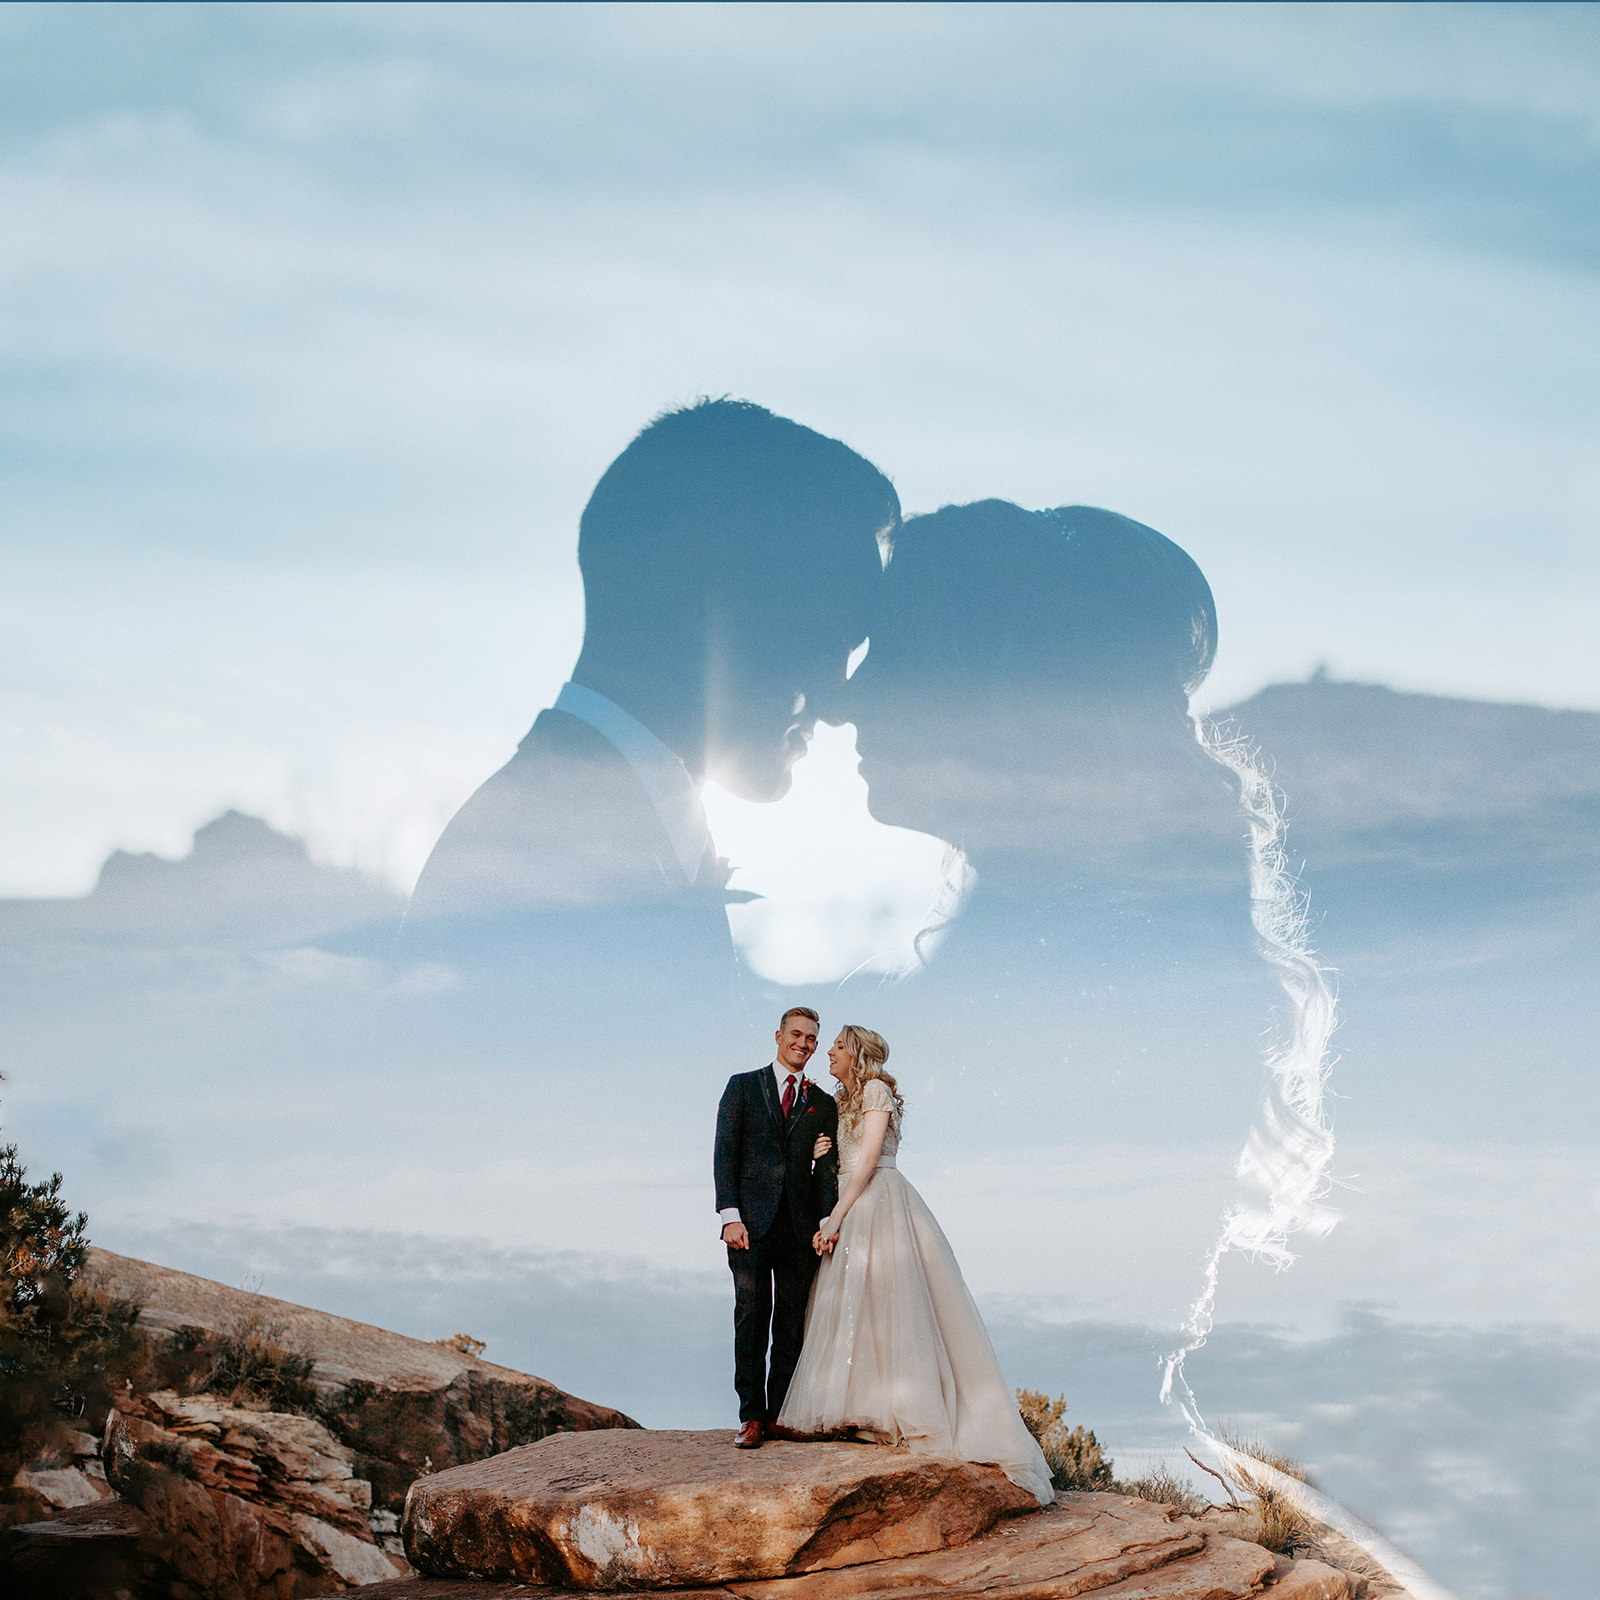 Double exposure of bride and groom silhouetted in background and smiling in foreground